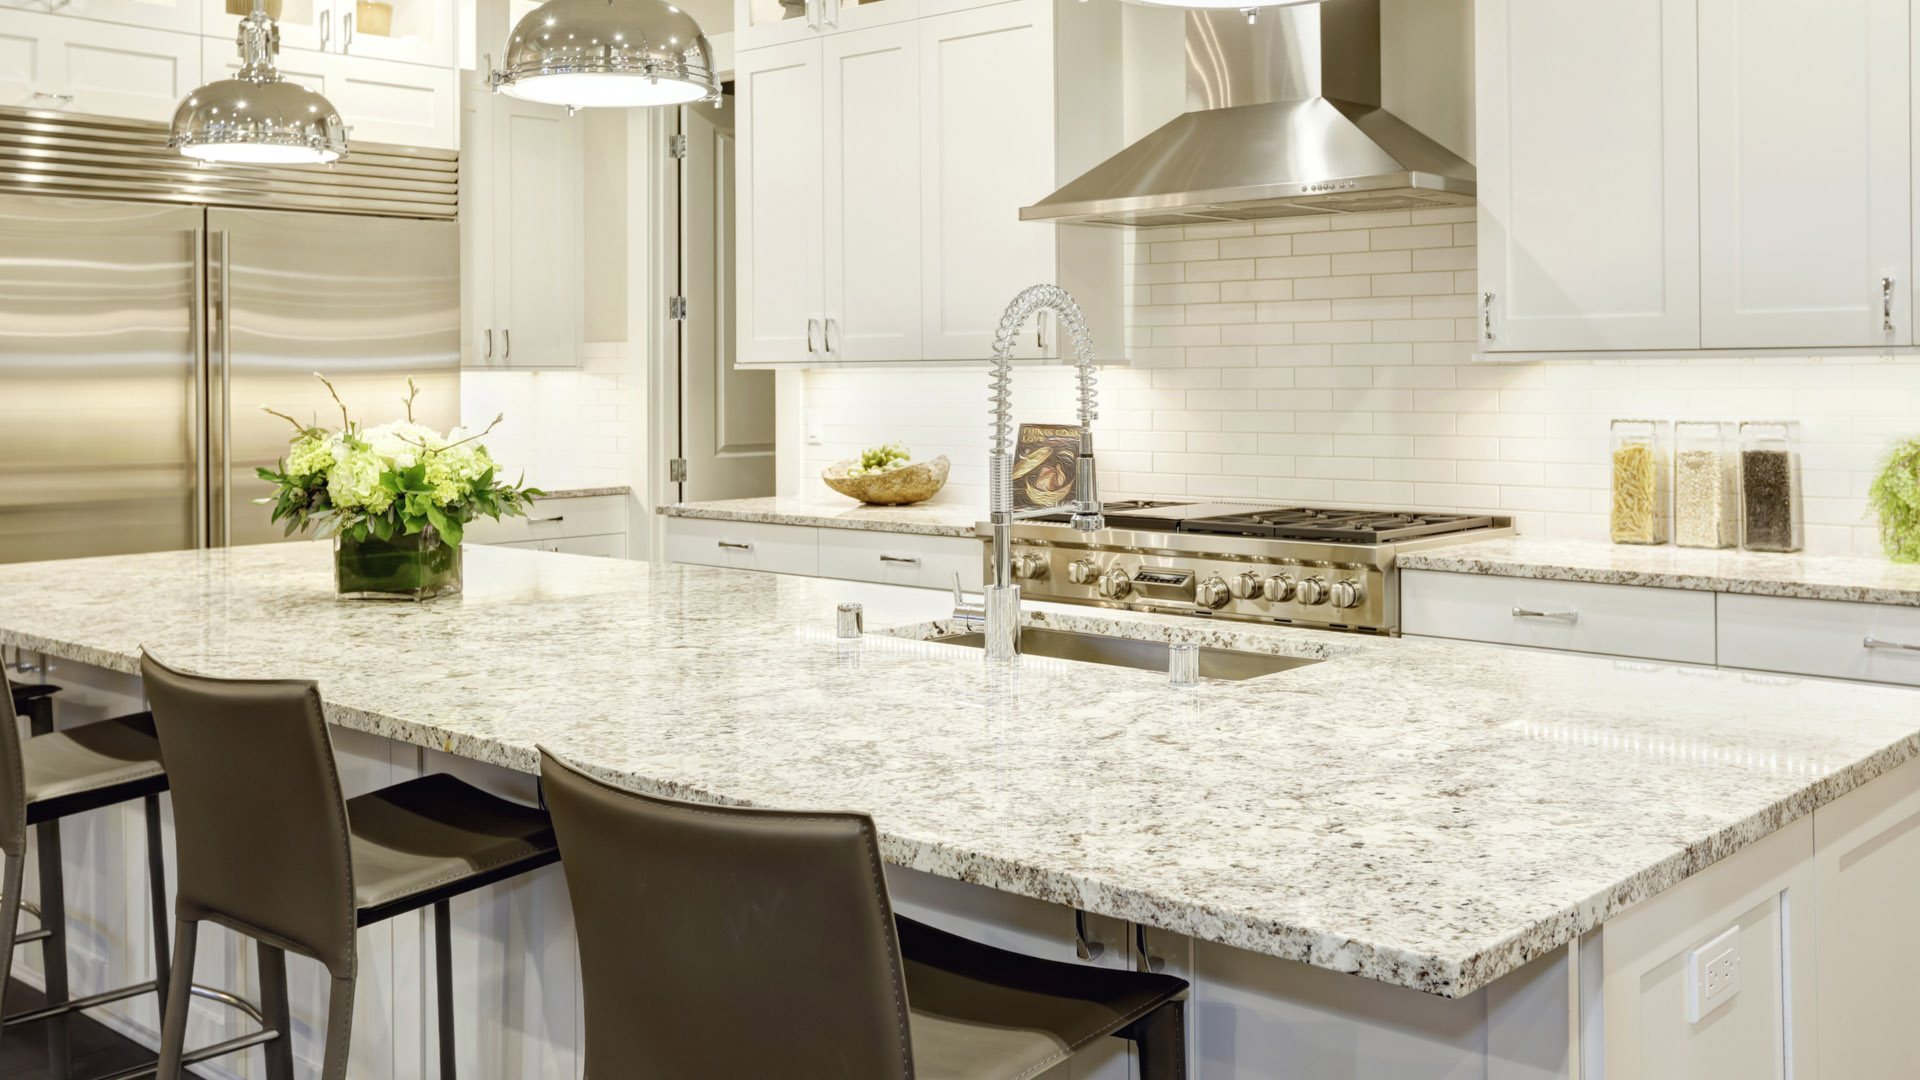 How To Disinfect Granite Countertops Daily